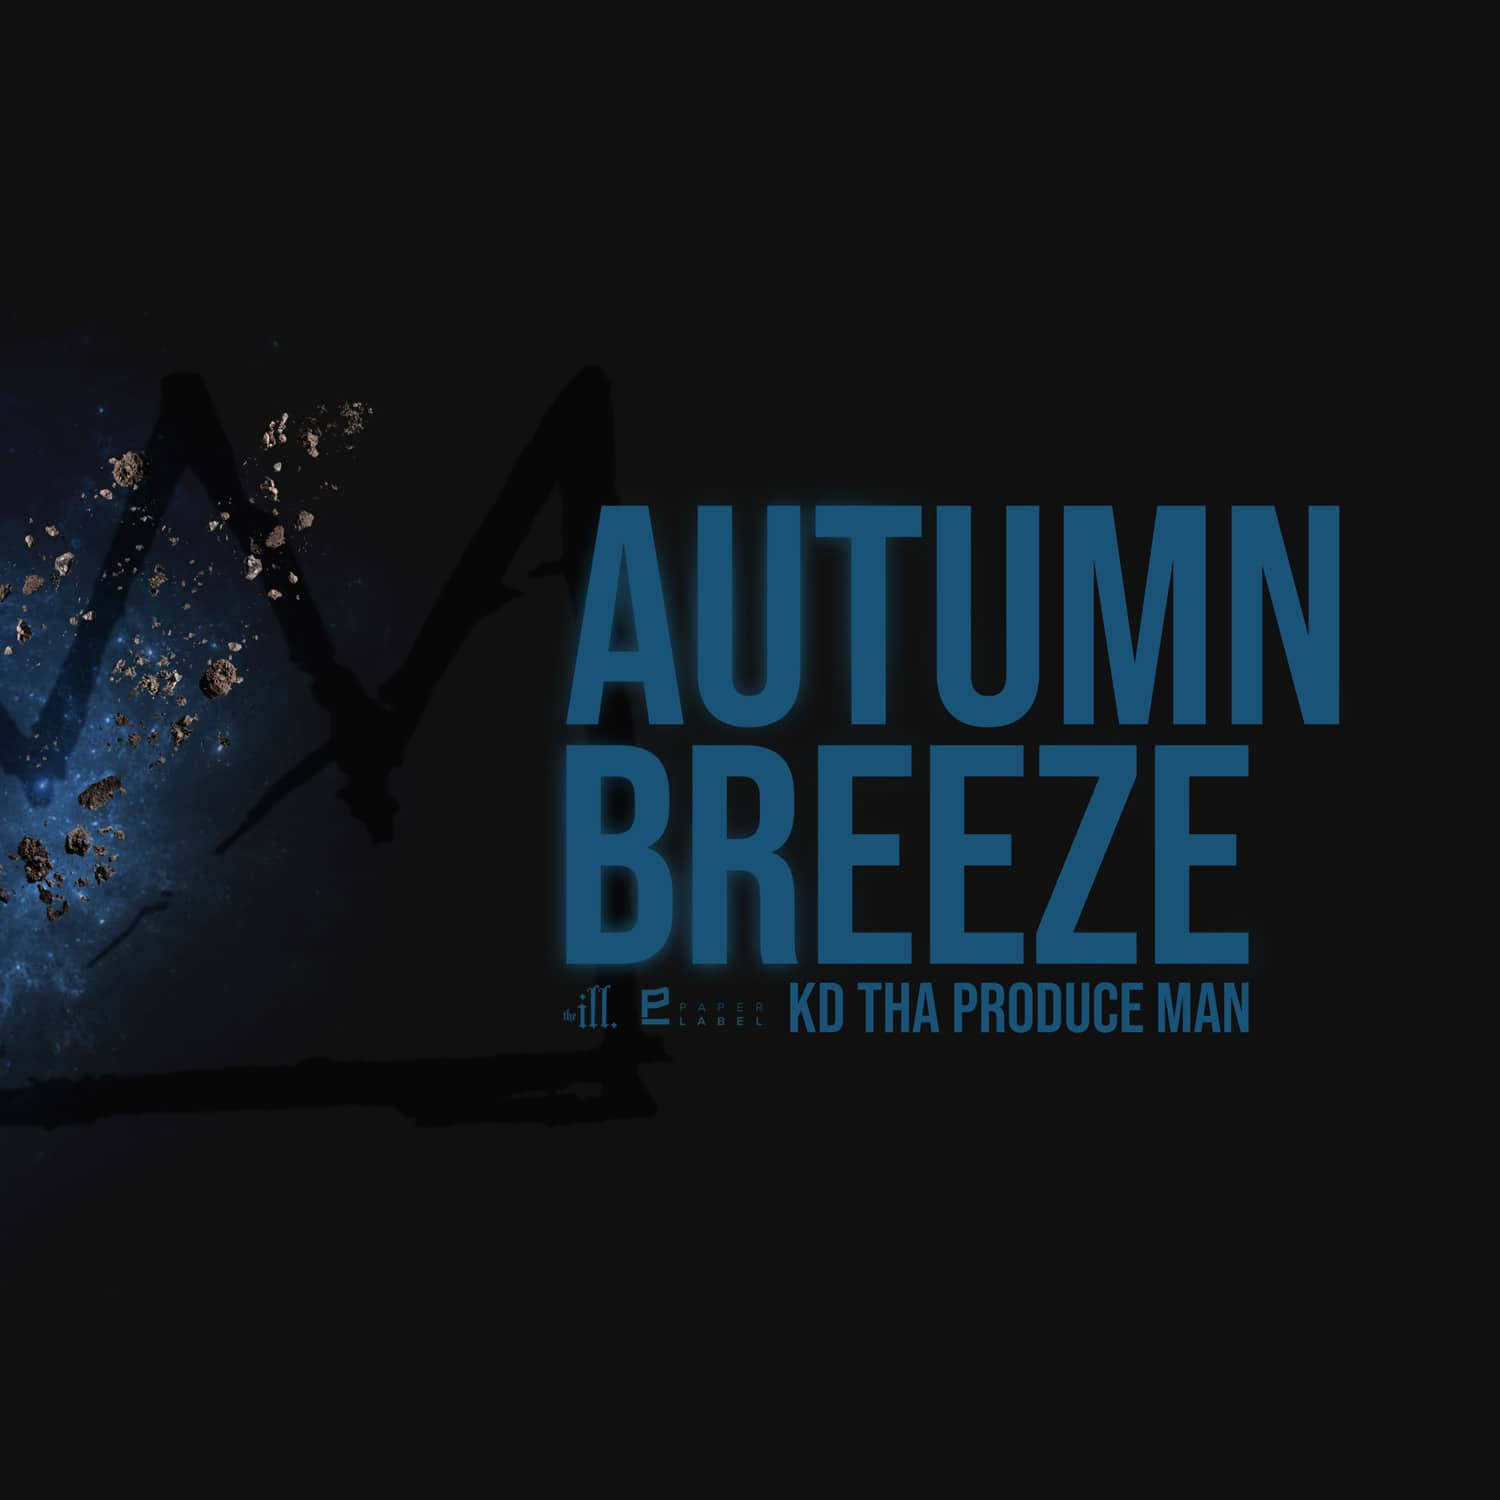 K.D. Tha Produce Man Autumn Breeze Cover, Artwork by The Kid Flames for The Paper Label